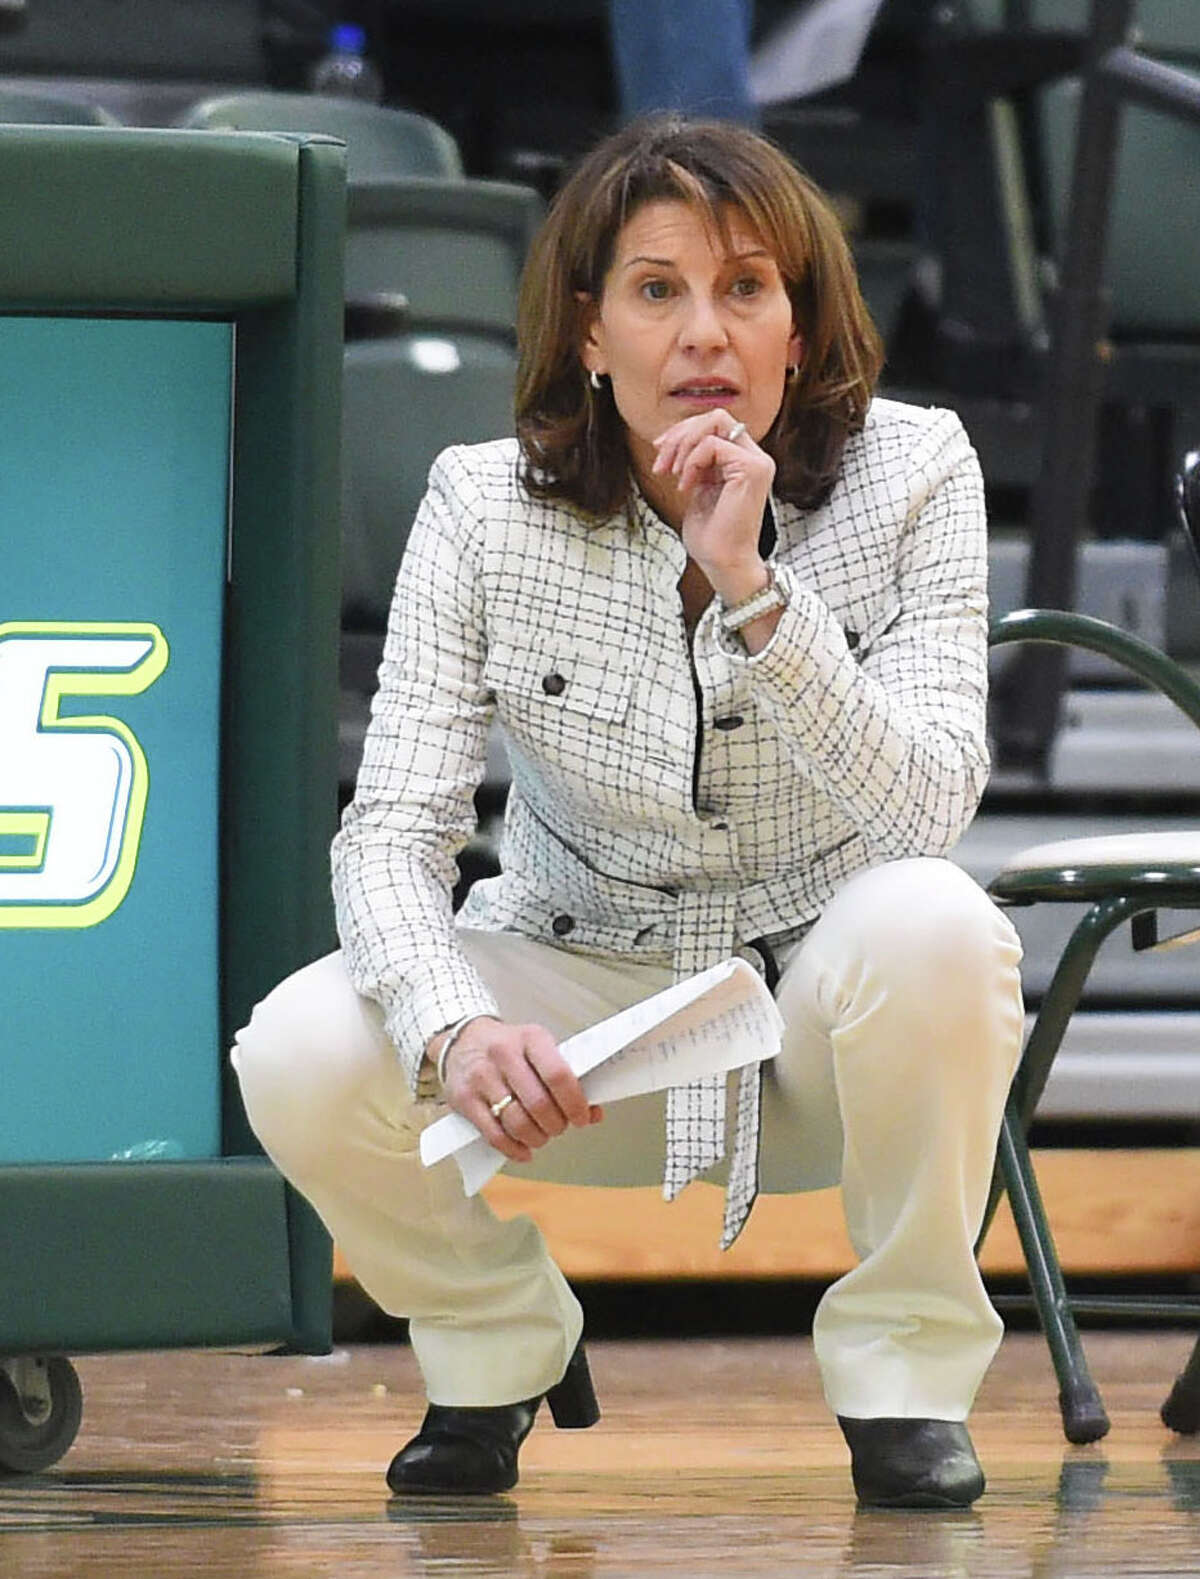 Gina Castelli, the former Siena College head coach who is now in her 6th season at Le Moyne, has relied on a trio of Capital Region players in this, her best season, at the Division II level. Her team won the Northeast-10 Conference Championship Sunday and will play in the NCAA Championship starting Friday March 15, 2019.